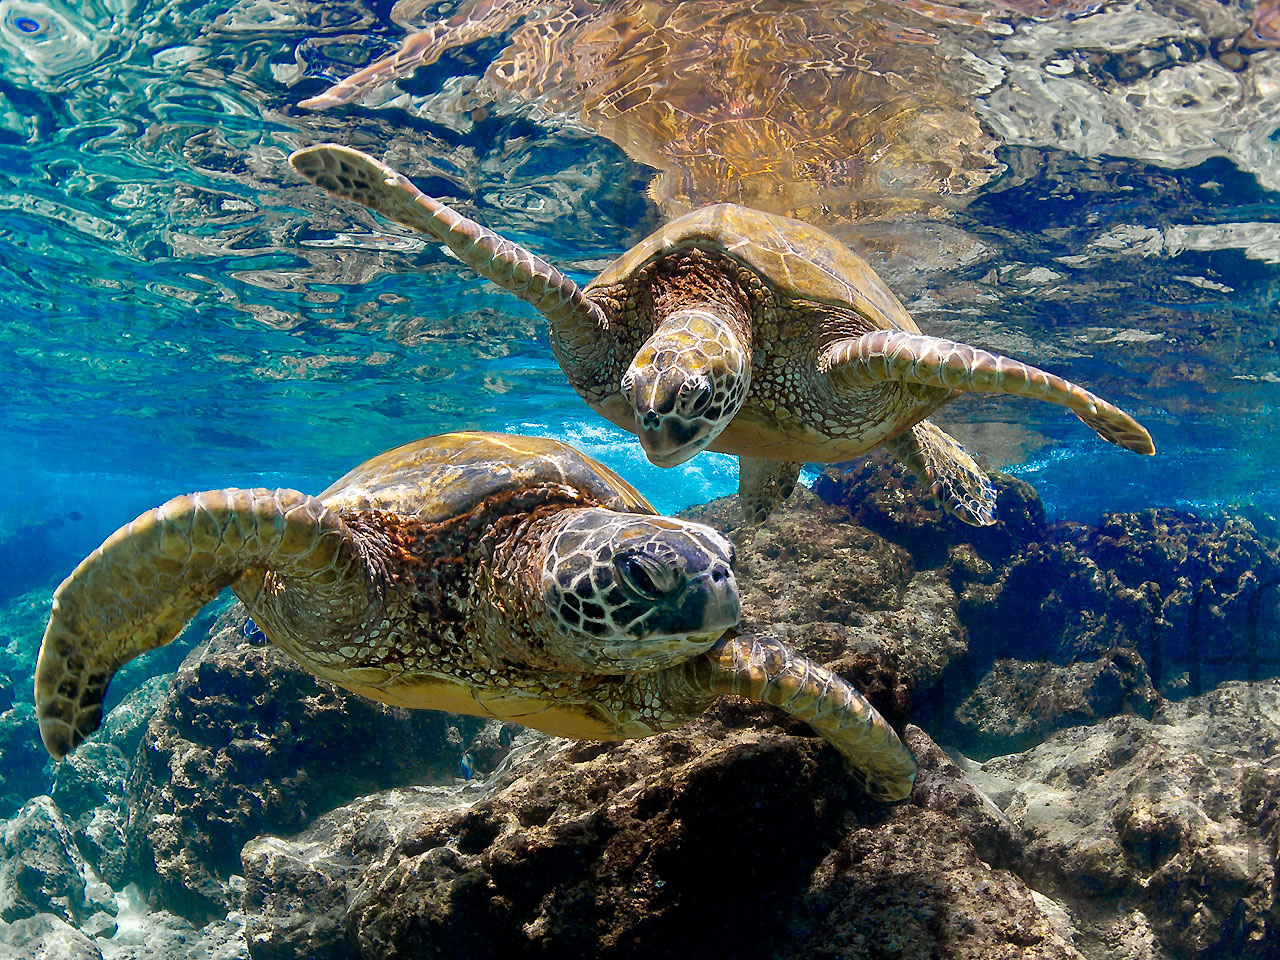 Playmates by Marty Wolff two turtles swimming underwater